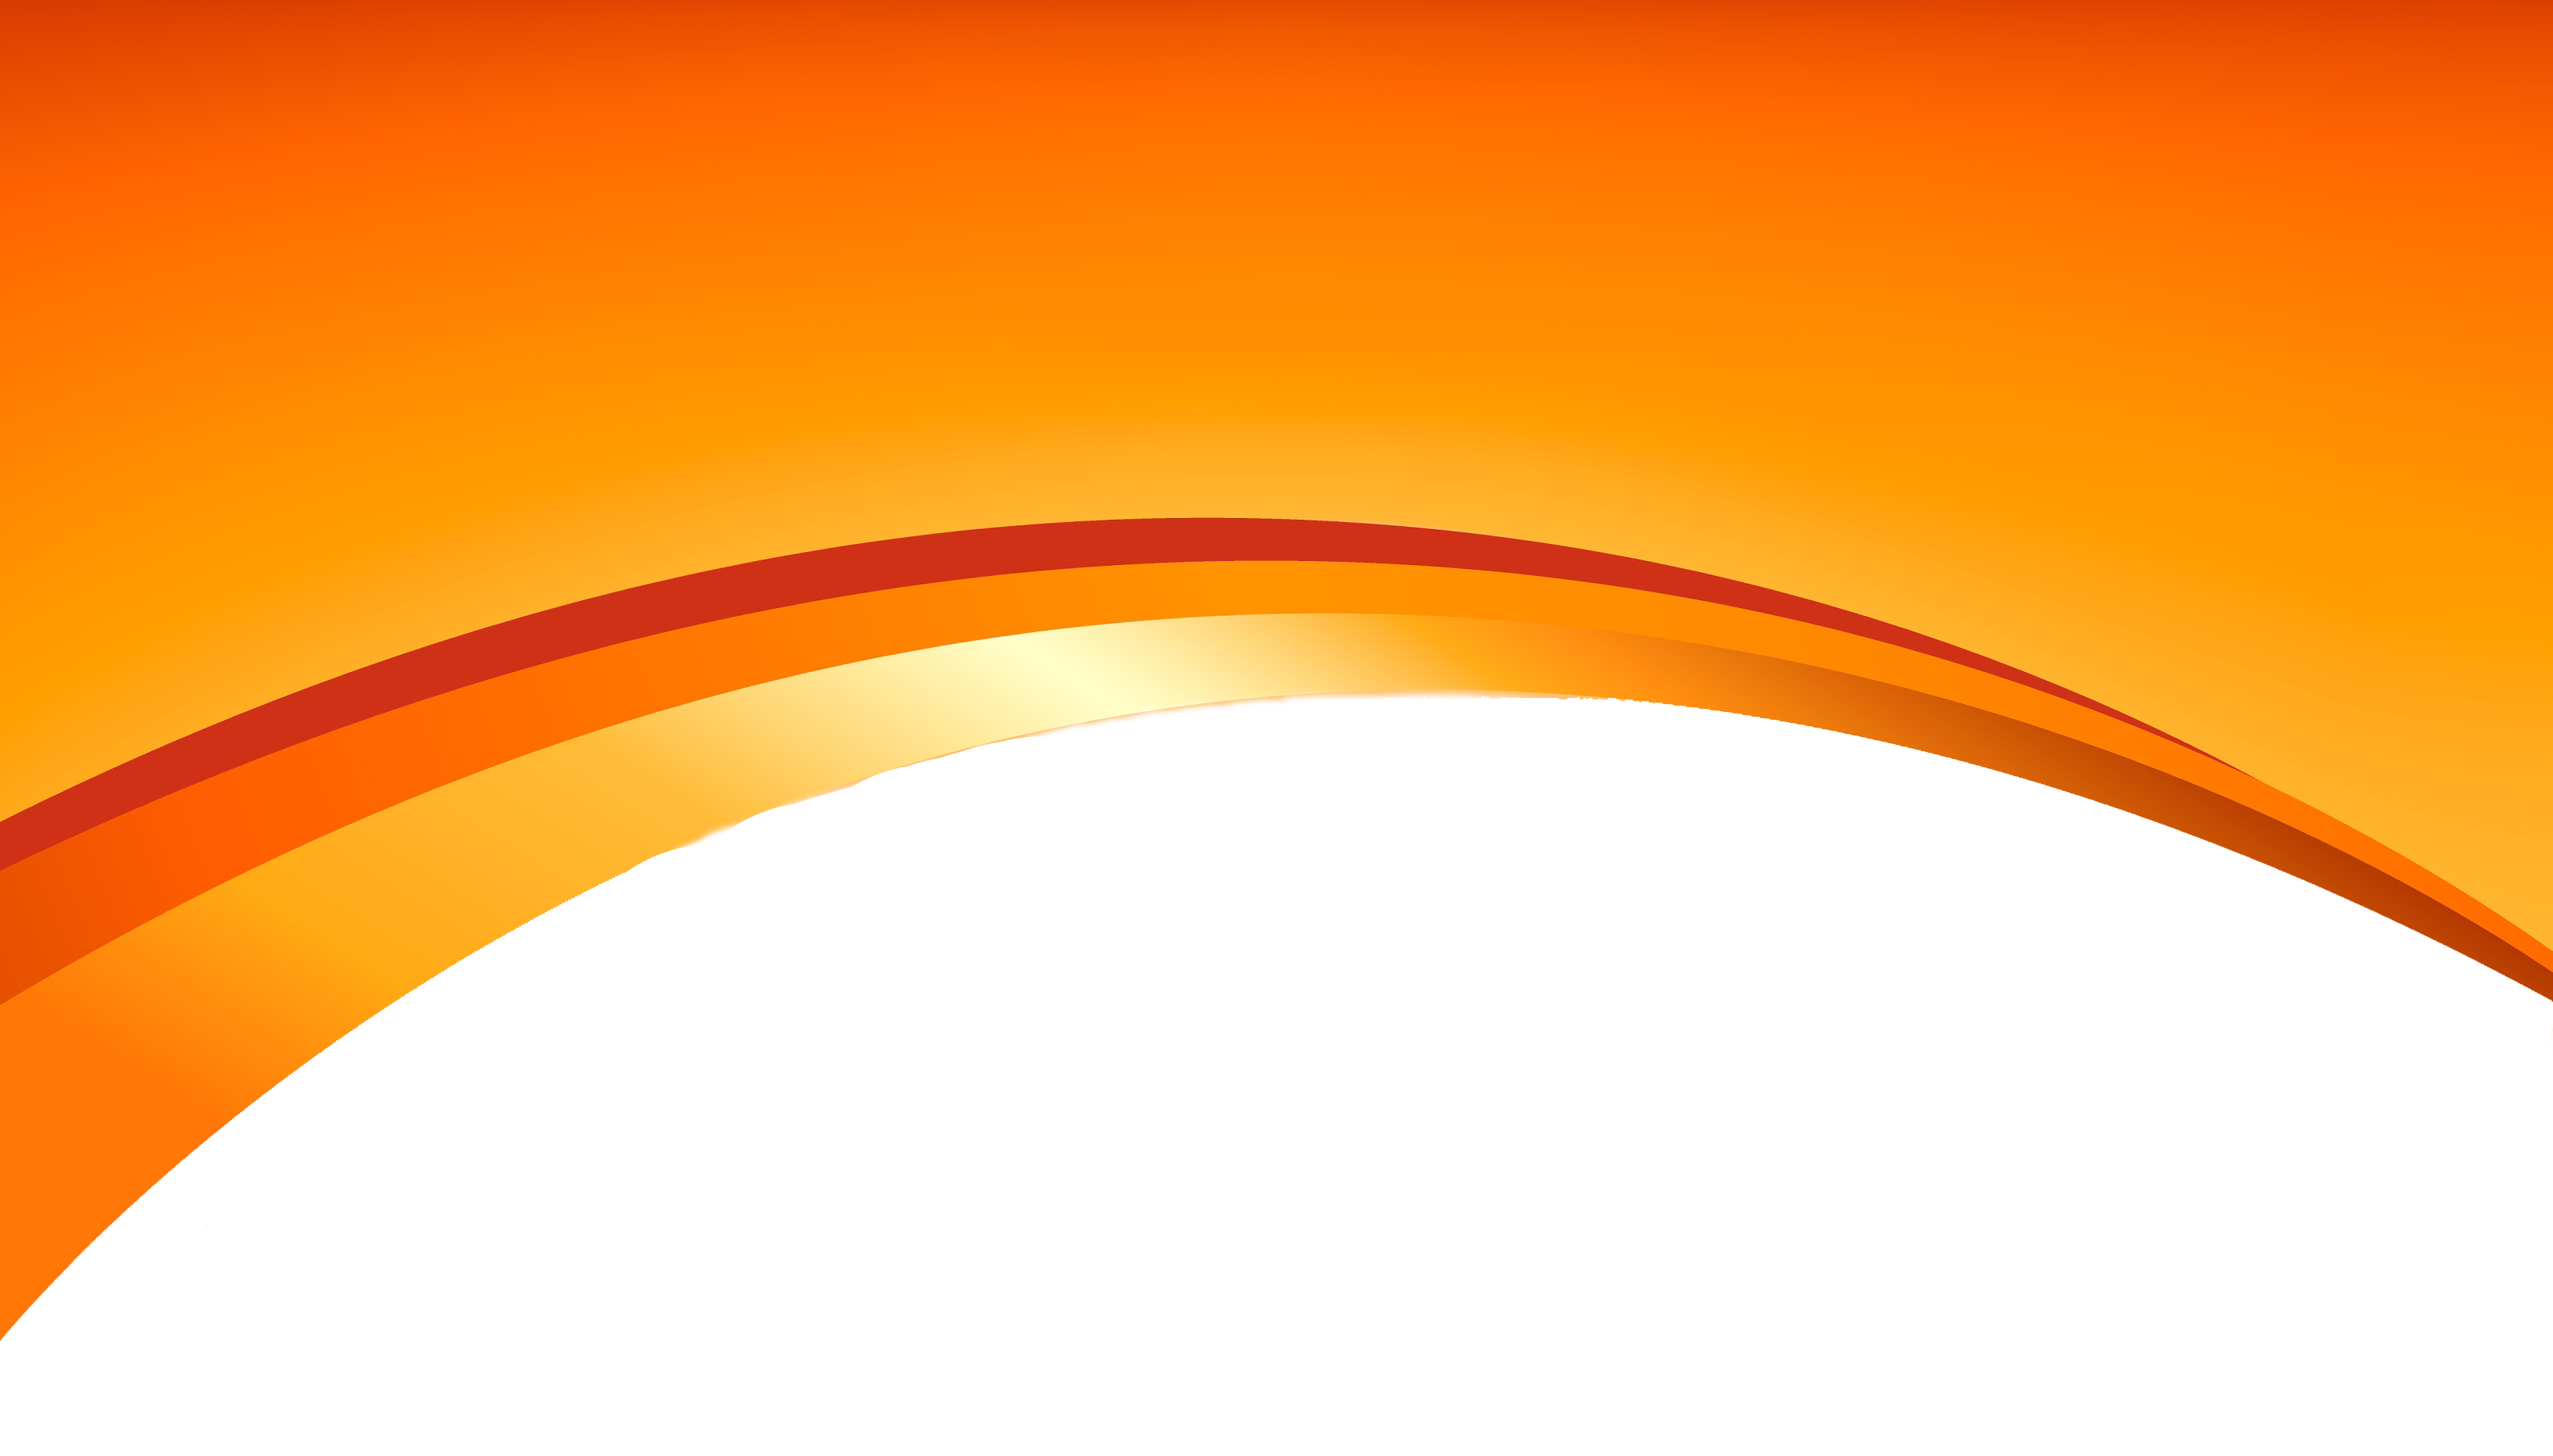 Orange Abstract Lines Transparent Background PNG.